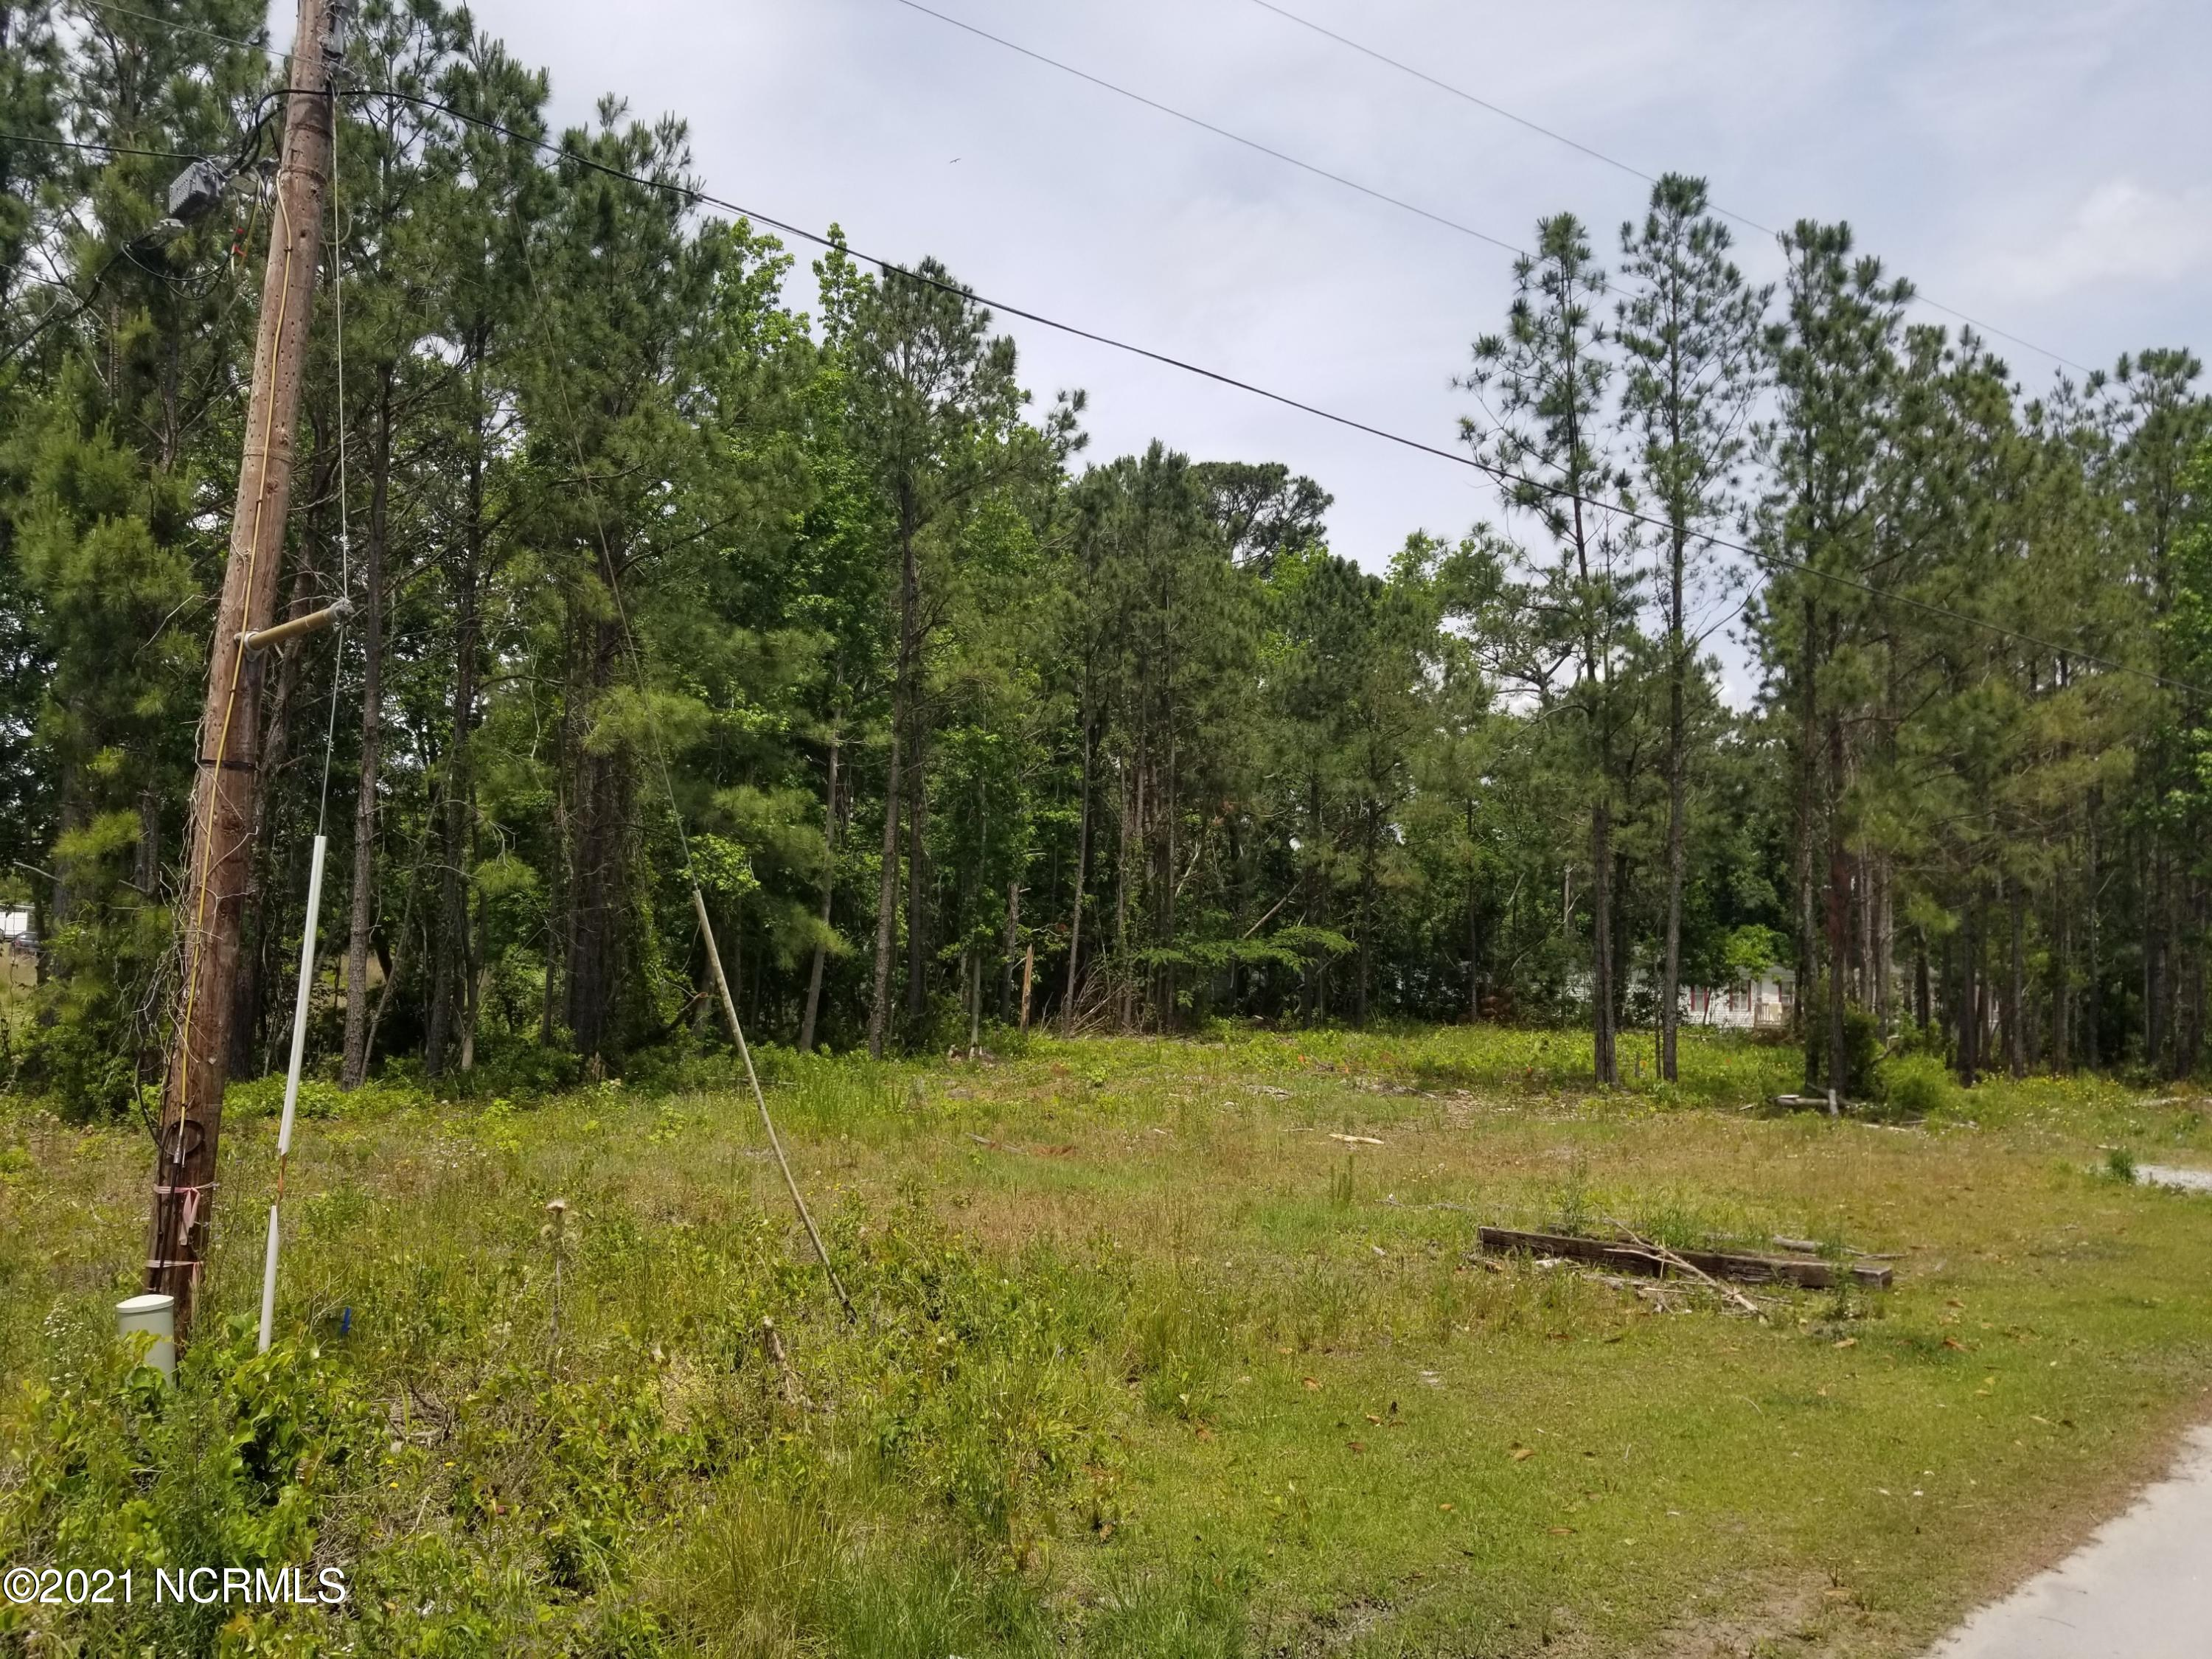 Over 3/4 of an Acre with NO RESTRICTIONS and SEPTIC IN THE GROUD!!! Mobile Homes, Tiny Homes, Manufactured ALLOWED. Bring your offer today!!!! Swansboro Schools and less than 10 minutes to The State Boat Ramp! 15 minutes to the BEACH too!!! Why rent Lot space when you can OWN a LOT with your Home on it!!!